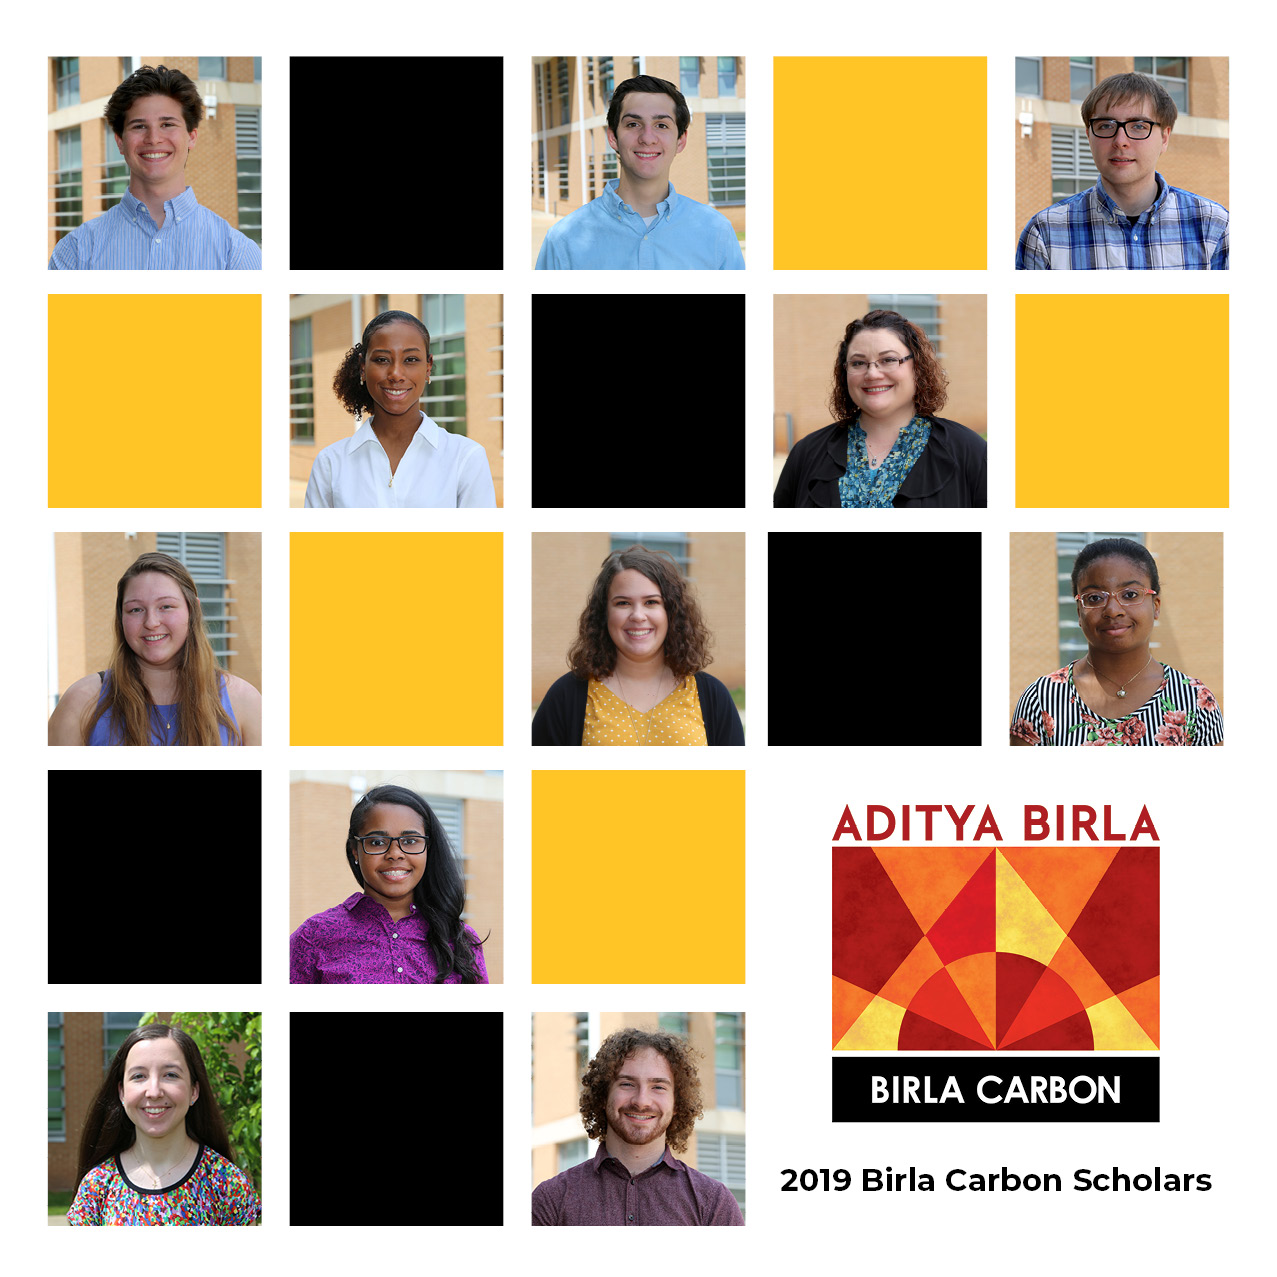 Photo Collage of the 2019 Birla Carbon Scholars, left to right, top to bottom: Max Andrews, Braden Clinebell, Robbie Cronin, Tia Gordon, Rebekah Henneborn, Emma Henry, Tessa Jordan, Naza Okafor, Destiny Paige, Emma Pearson, and Hunter Spivey.